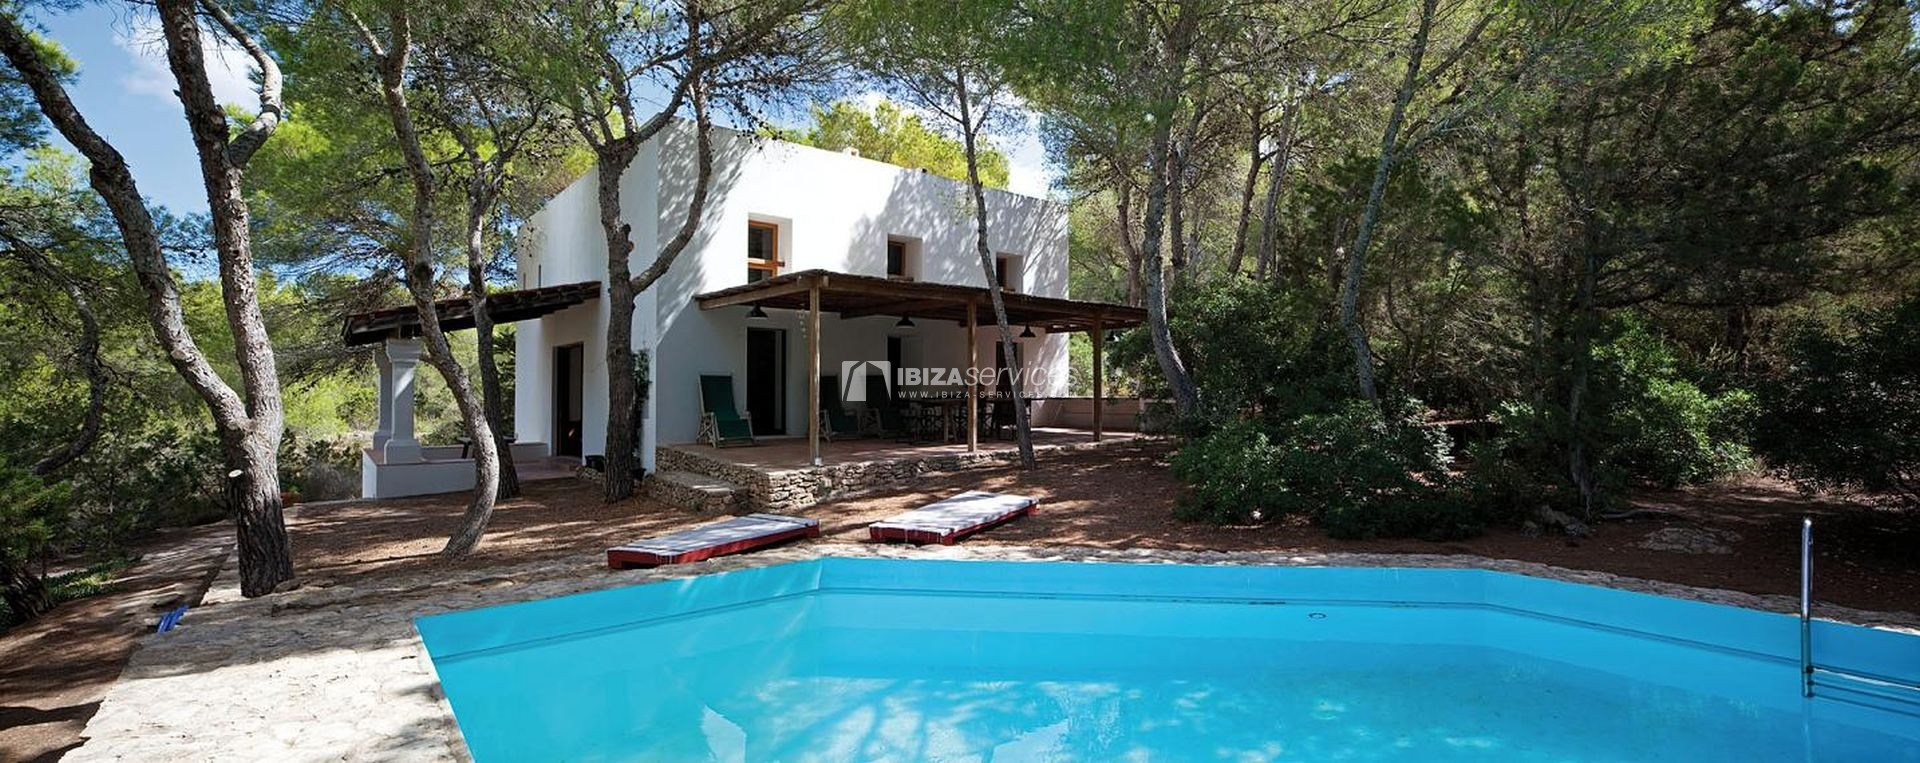 Rustic villa for sale in Formentera perspectiva 11